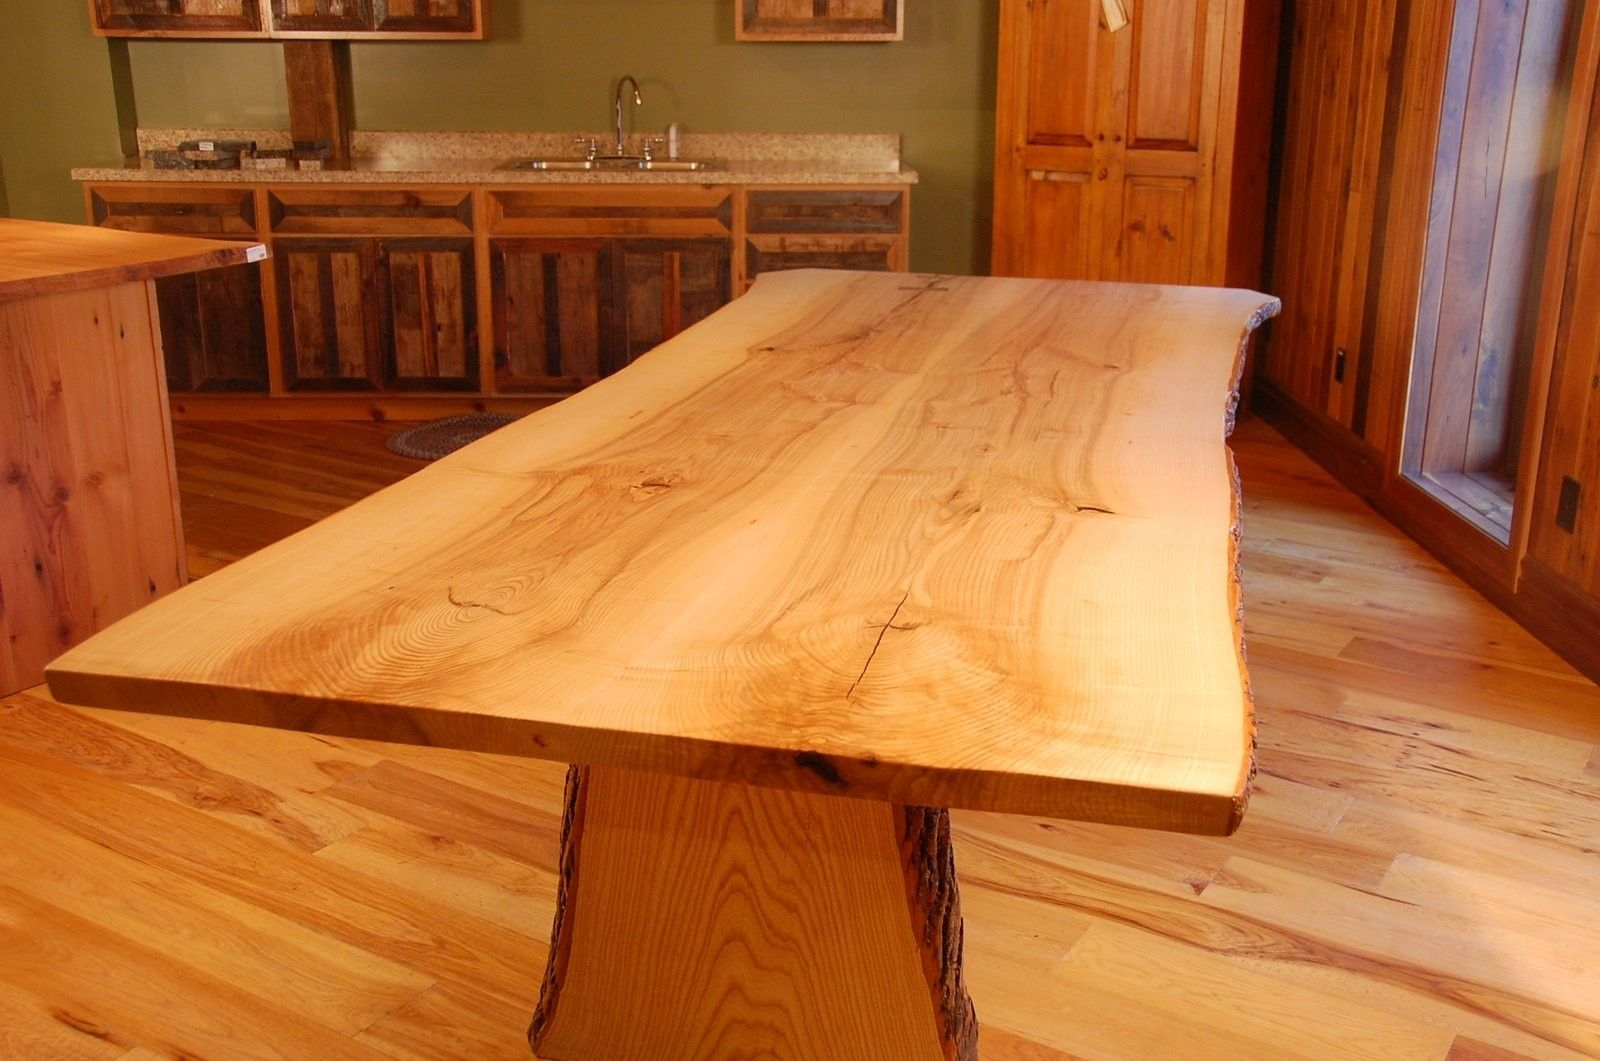 Hand Crafted Live Edge Ash Slab Dining Table By Corey Morgan Wood Works CustomMadecom